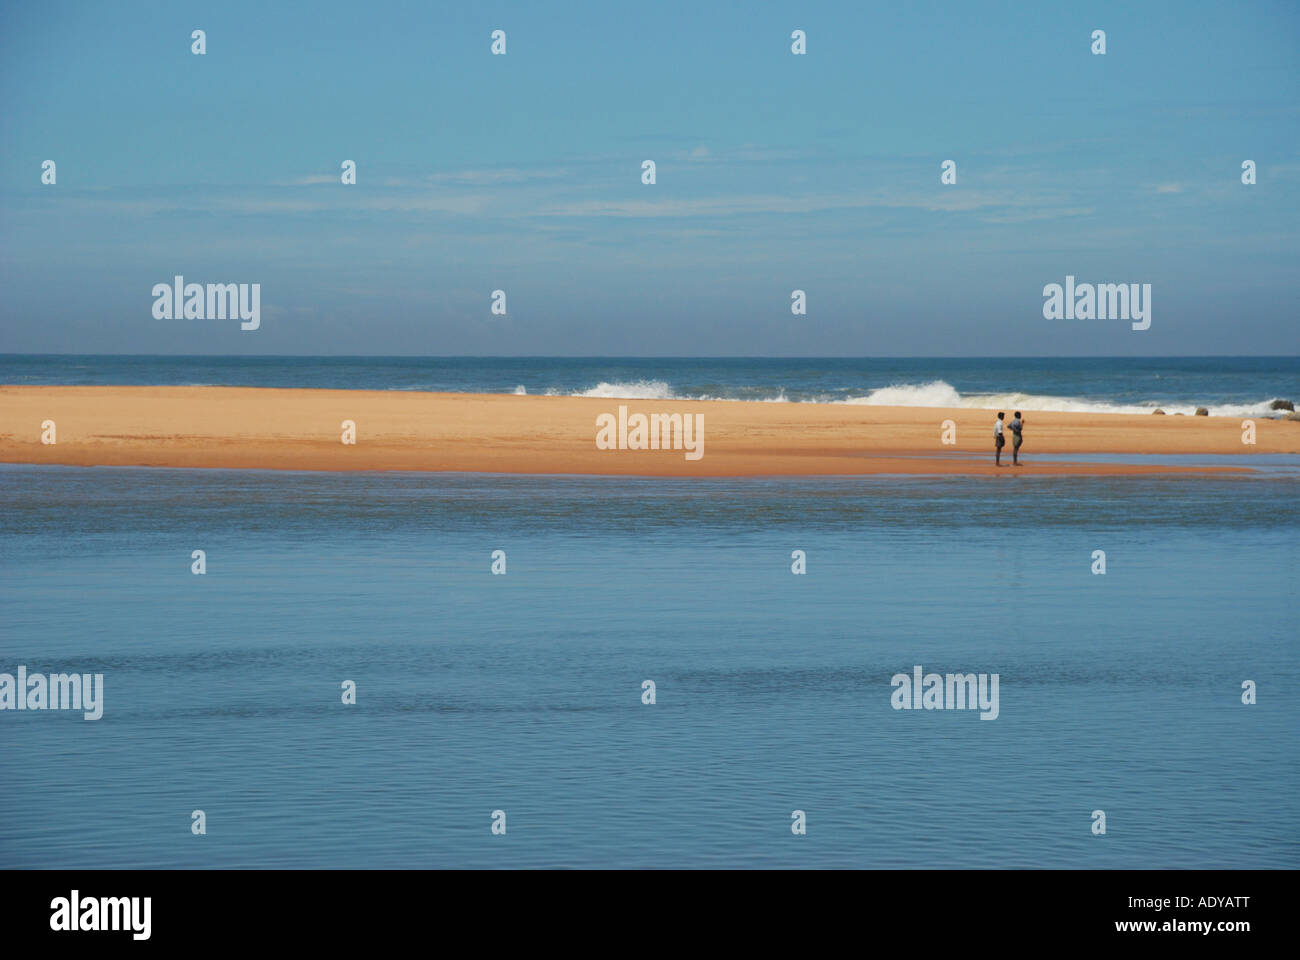 two man's waching the sea it is one joint place of sea and lake - Stock Image